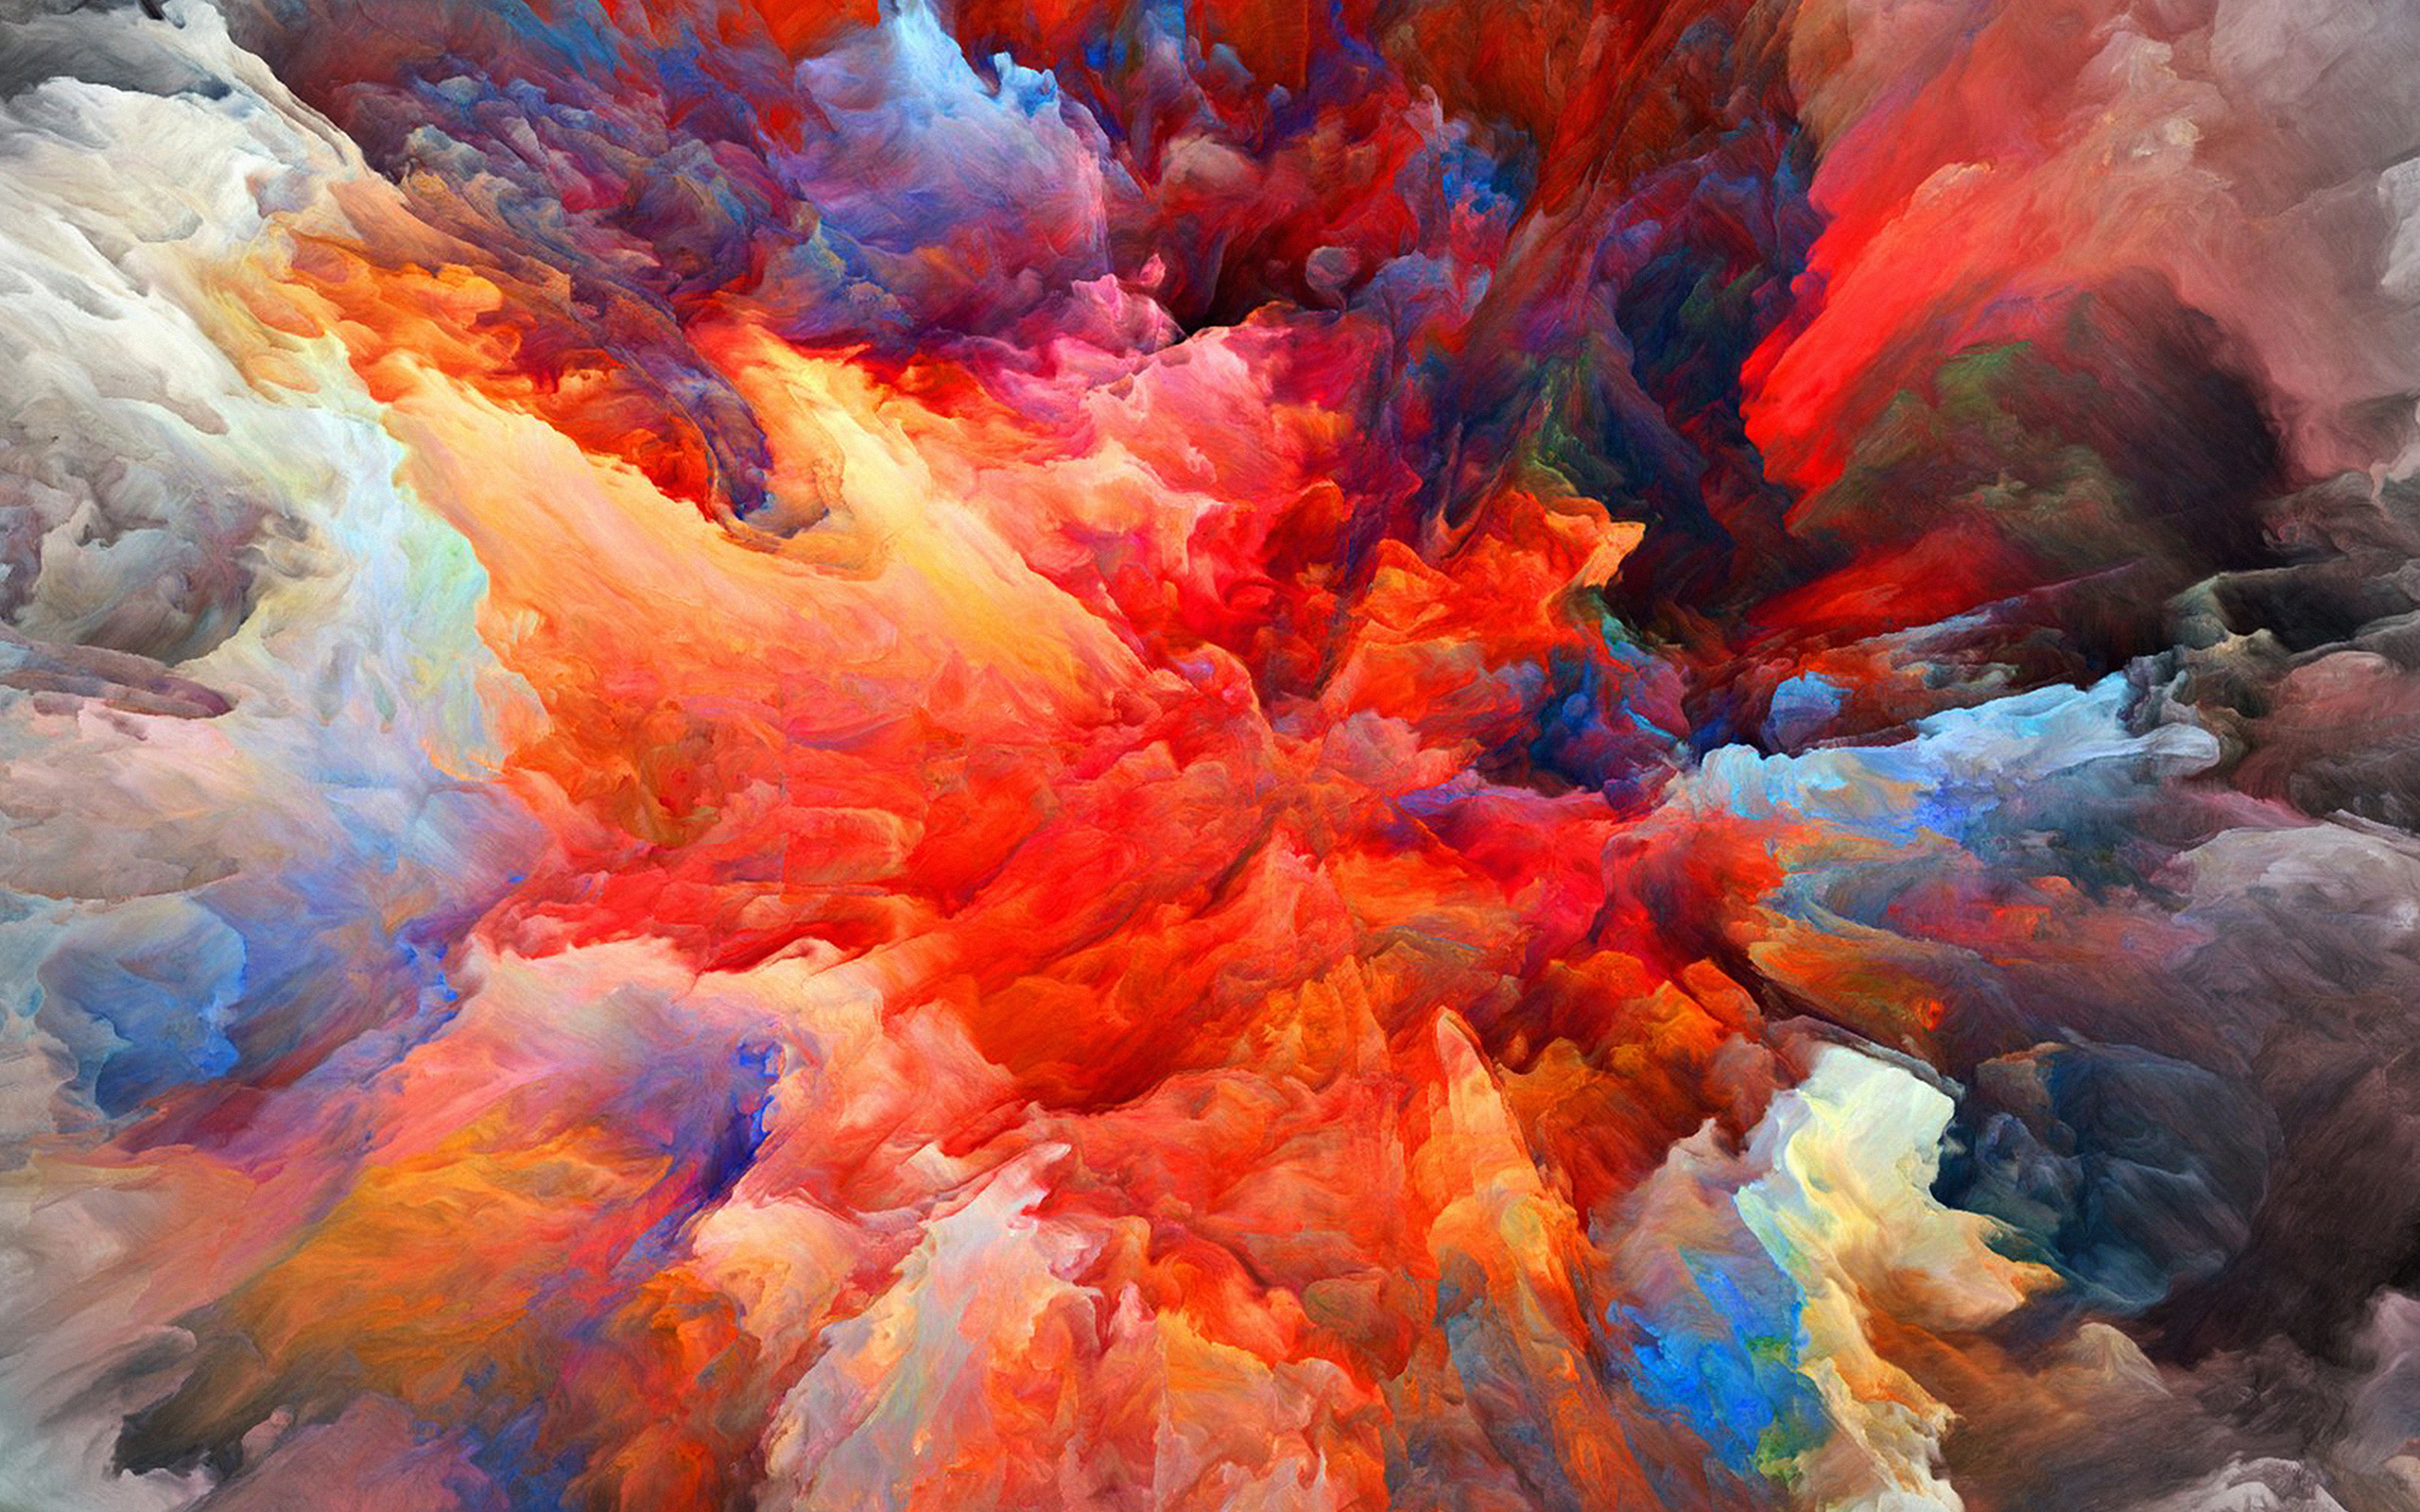 vq21 color explosion red paint pattern